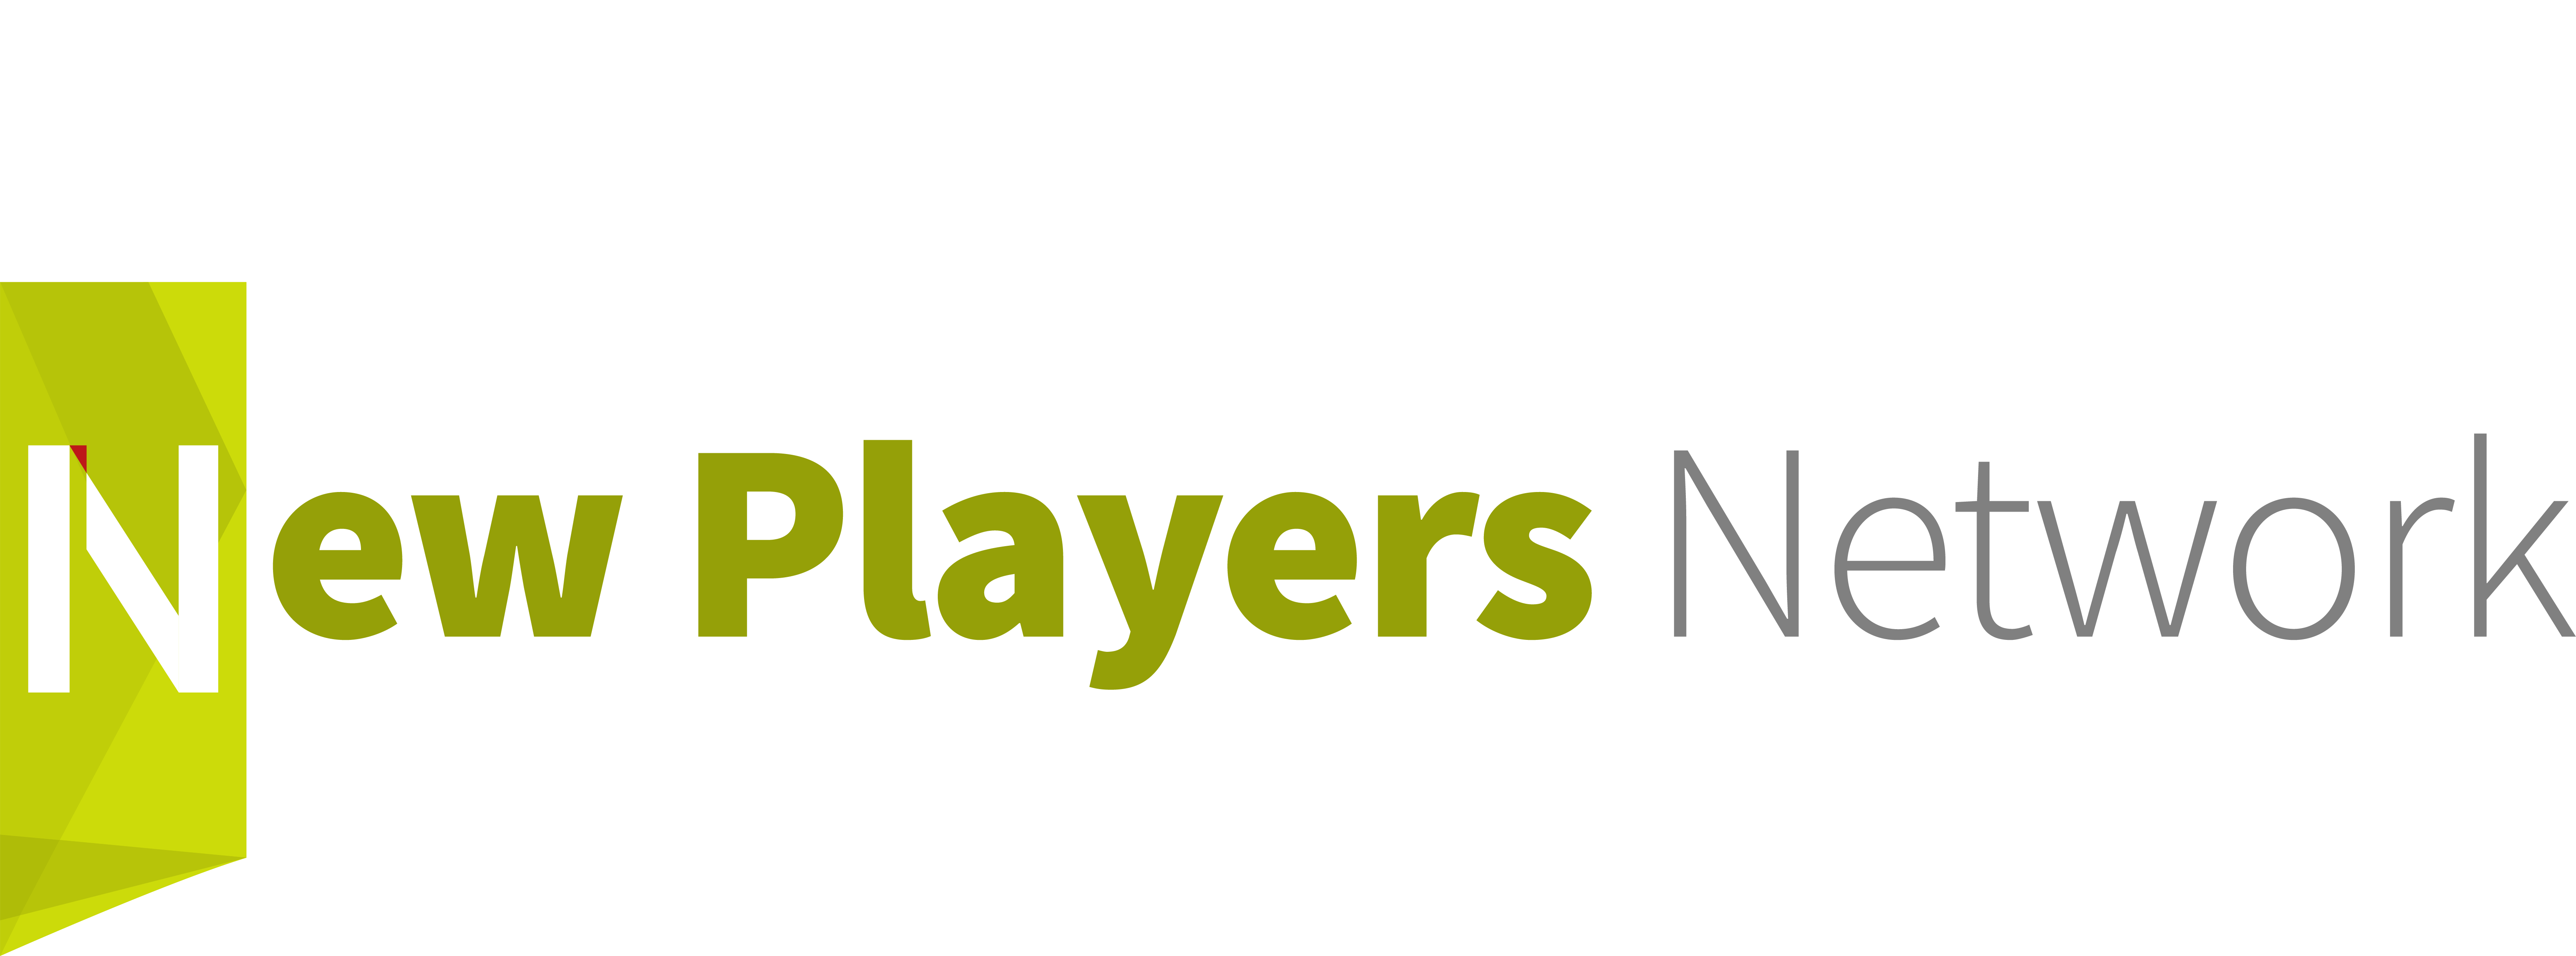 New Players Network